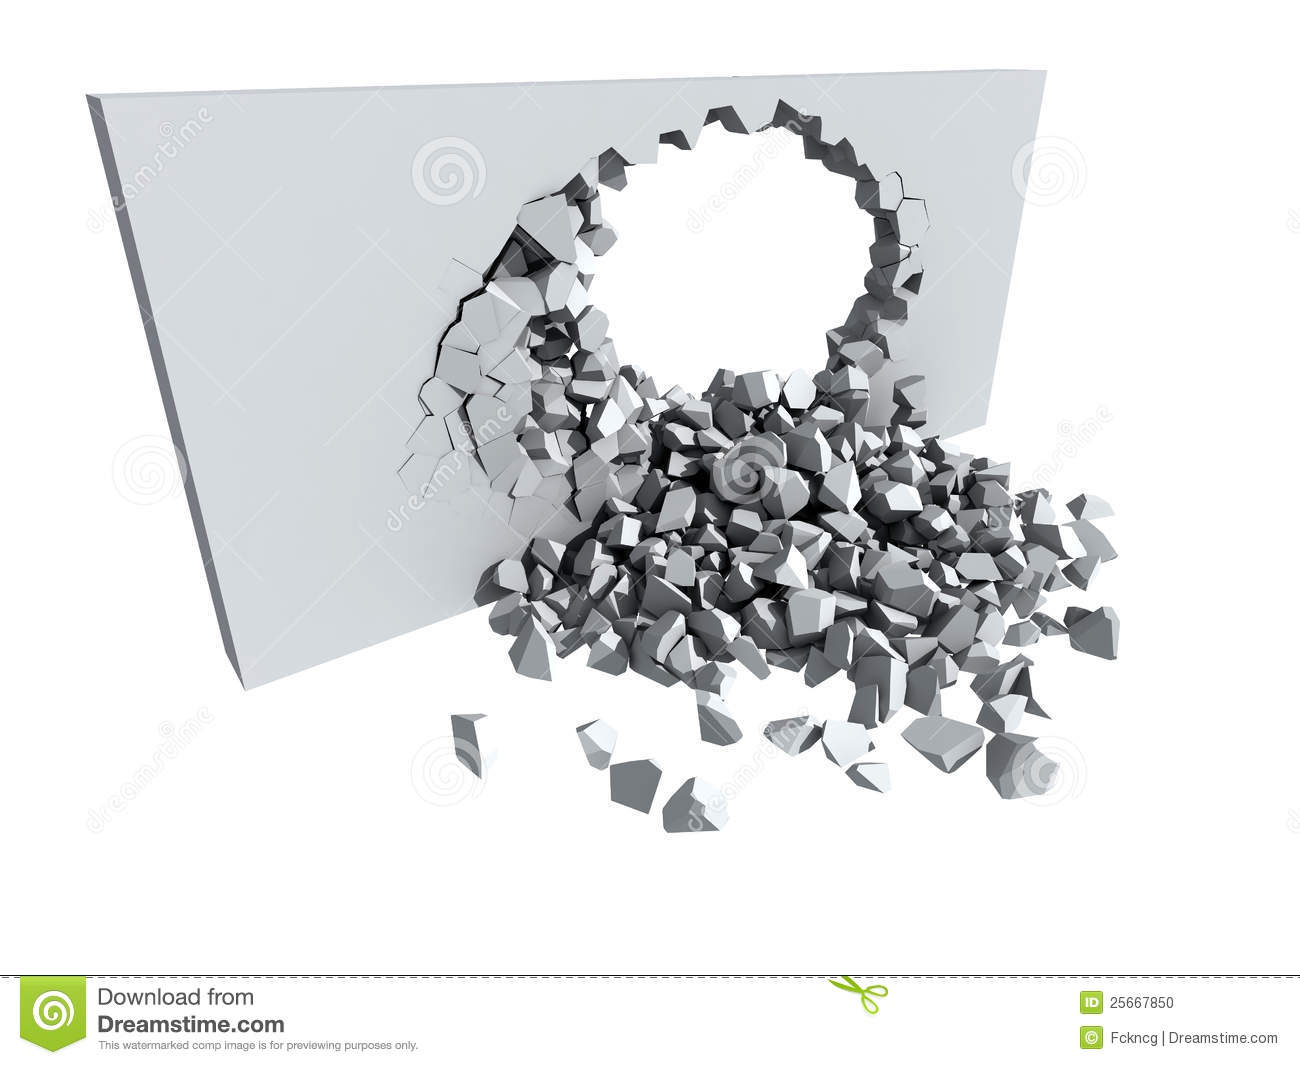 Crumbling crumbling concrete wall with hole stock photo - image: 25667850